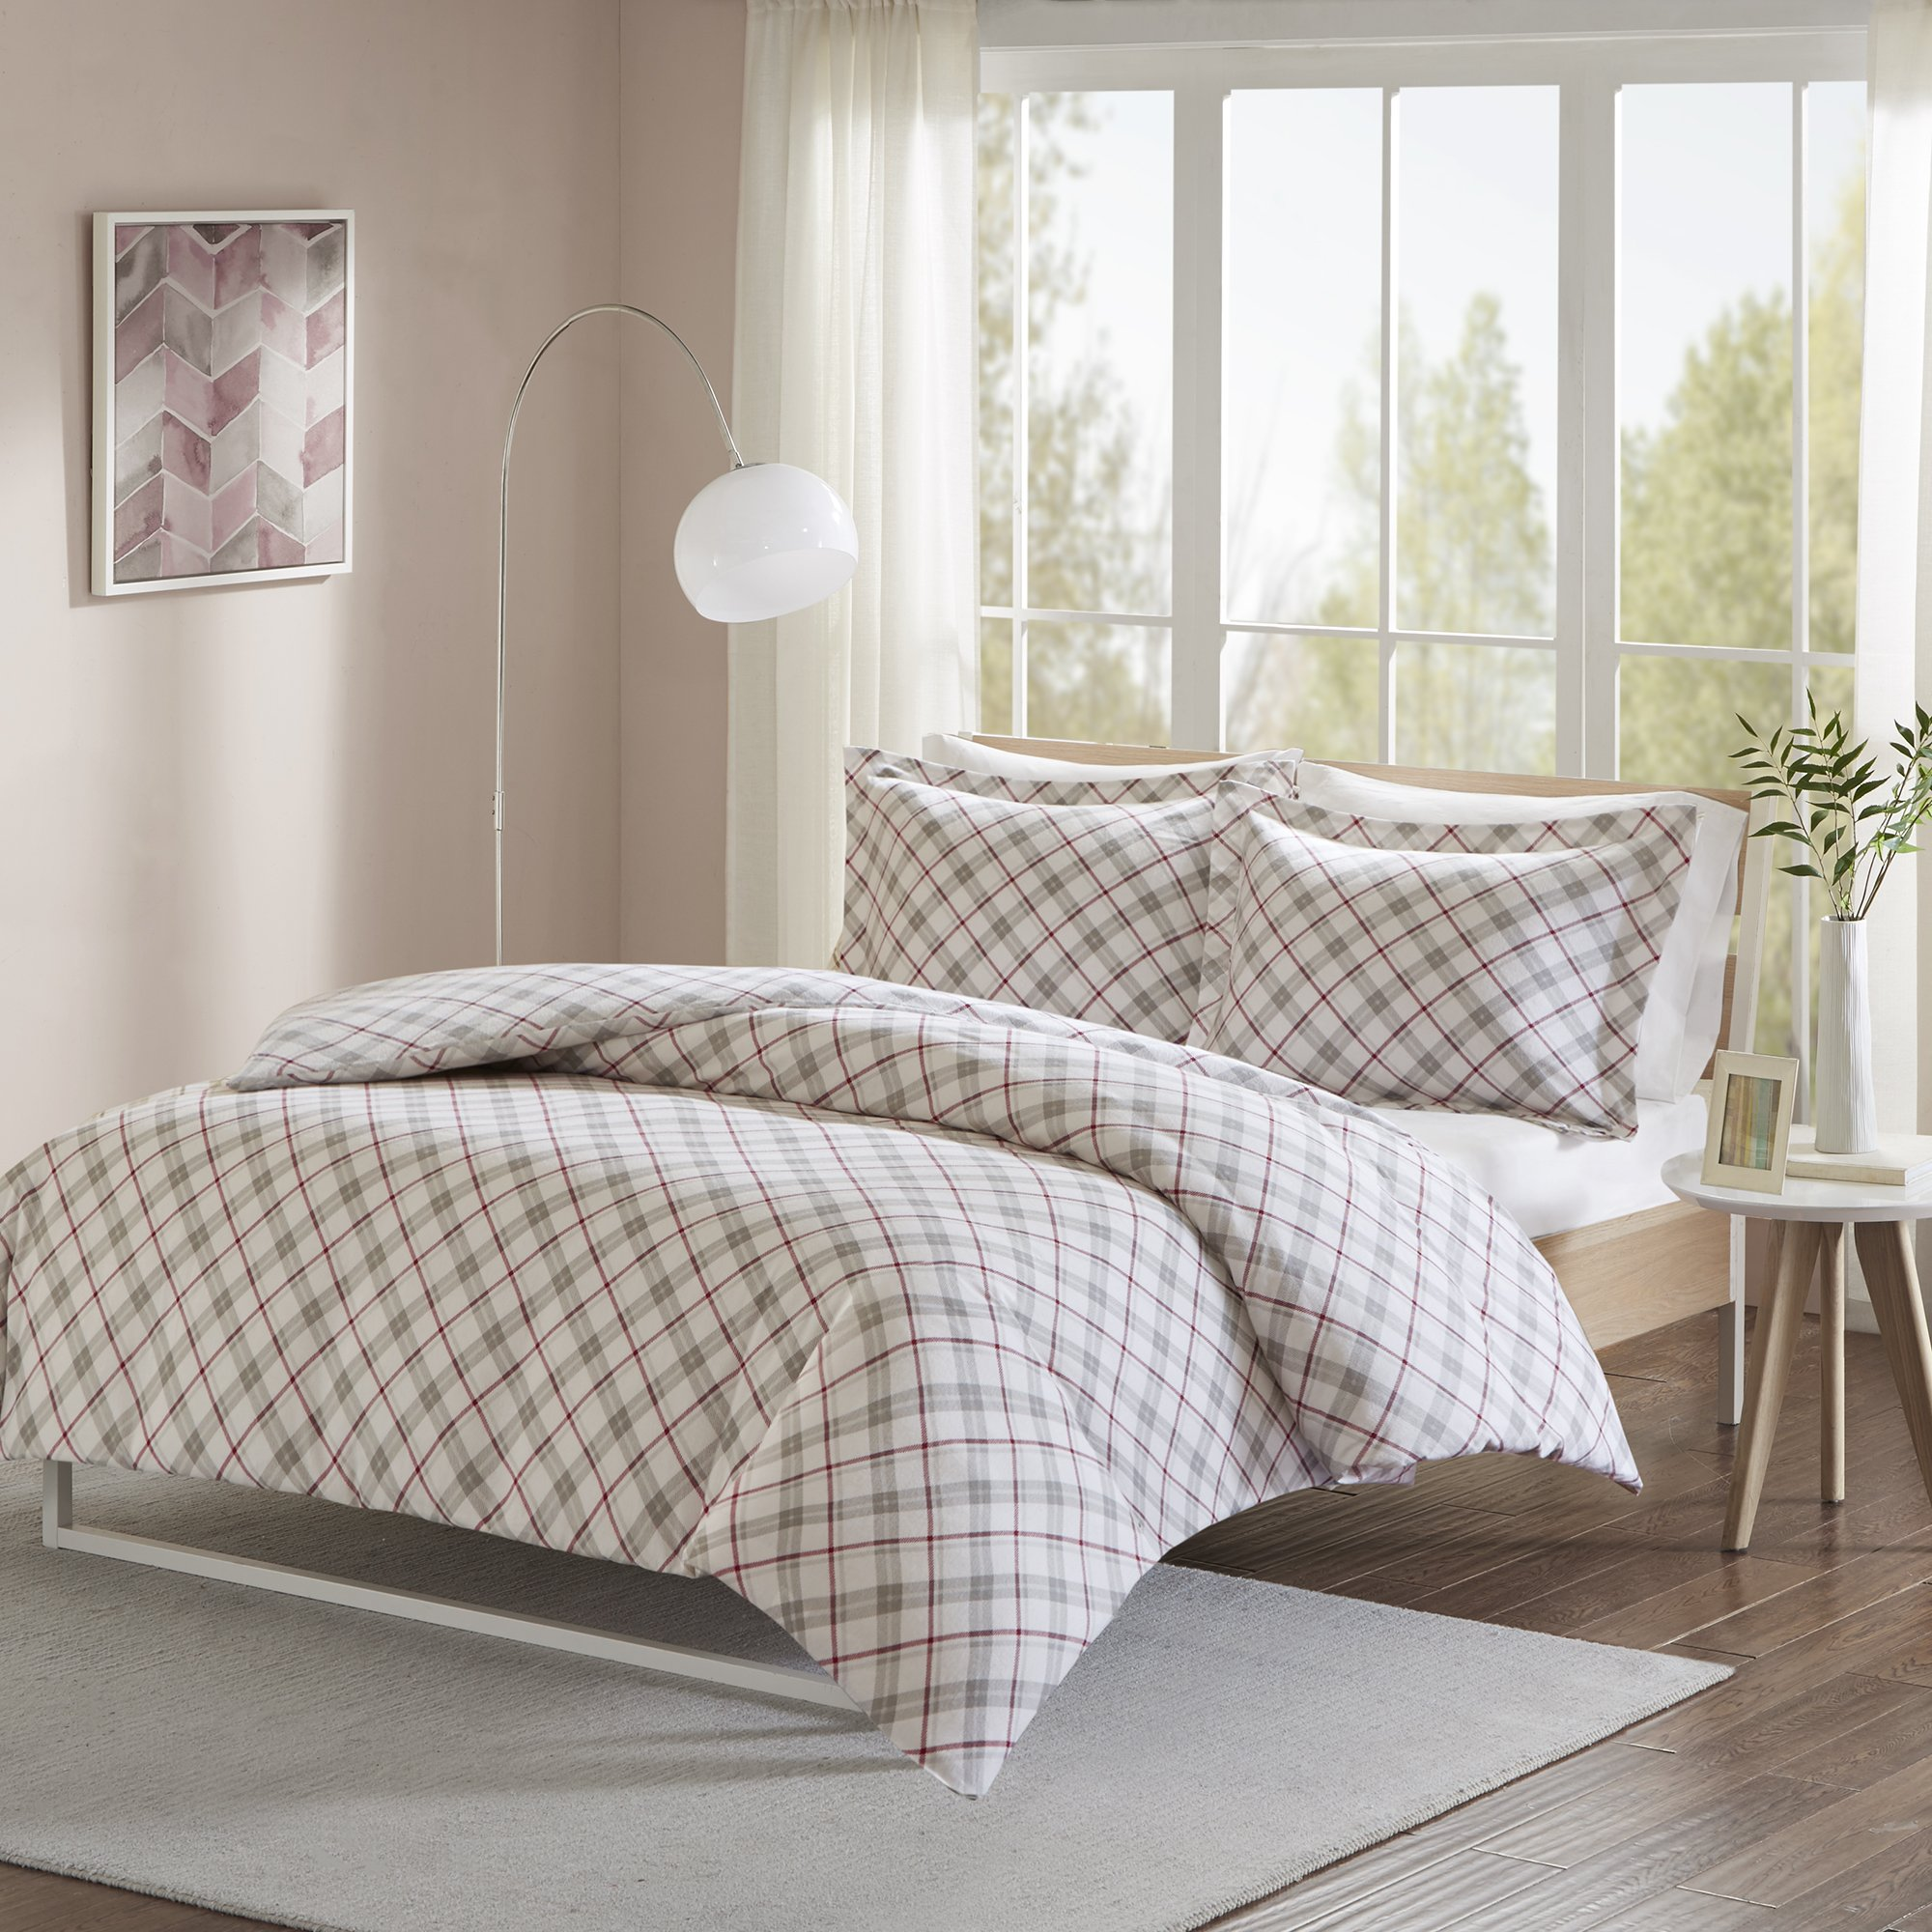 Comfort Spaces - Ultra Soft 100% Cotton Plaid Flannel Mini Duvet Cover Set - 3 Piece - Grey/Red - King Size, Includes 1 Duvet Cover, 2 Shams